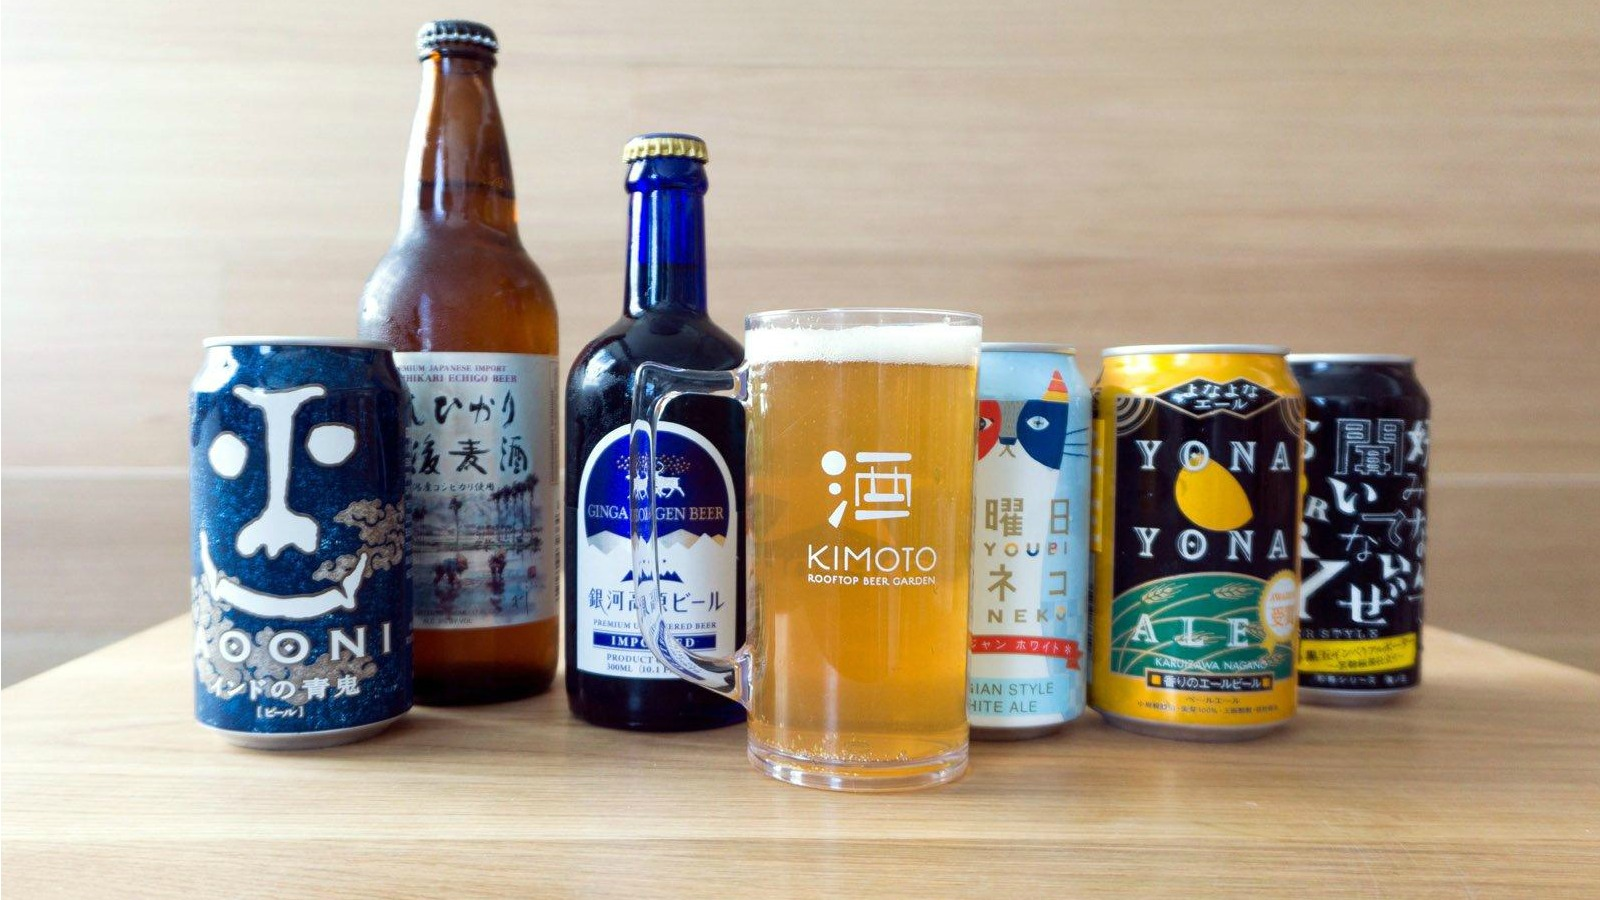 Kimoto Rooftop Beer and Garden